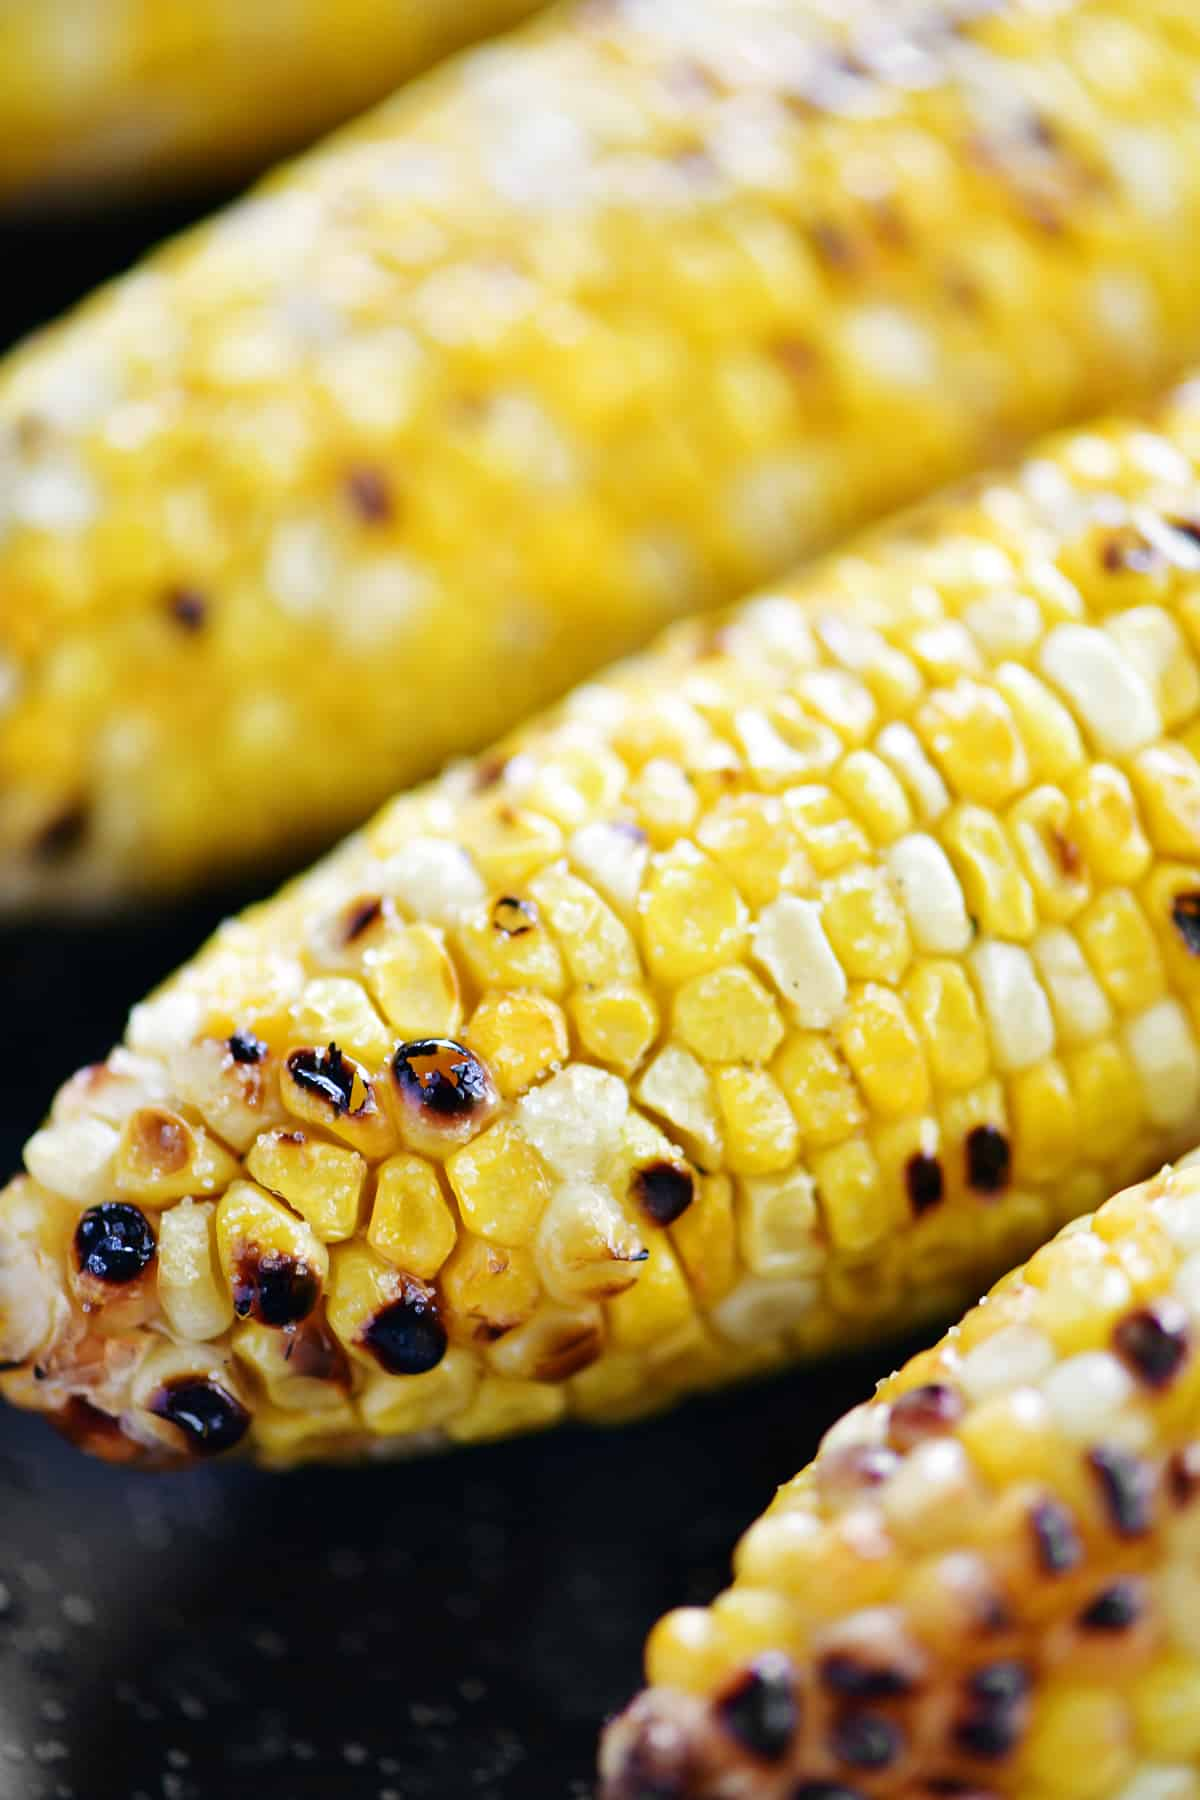 grilled corn on the cob shucked closed up